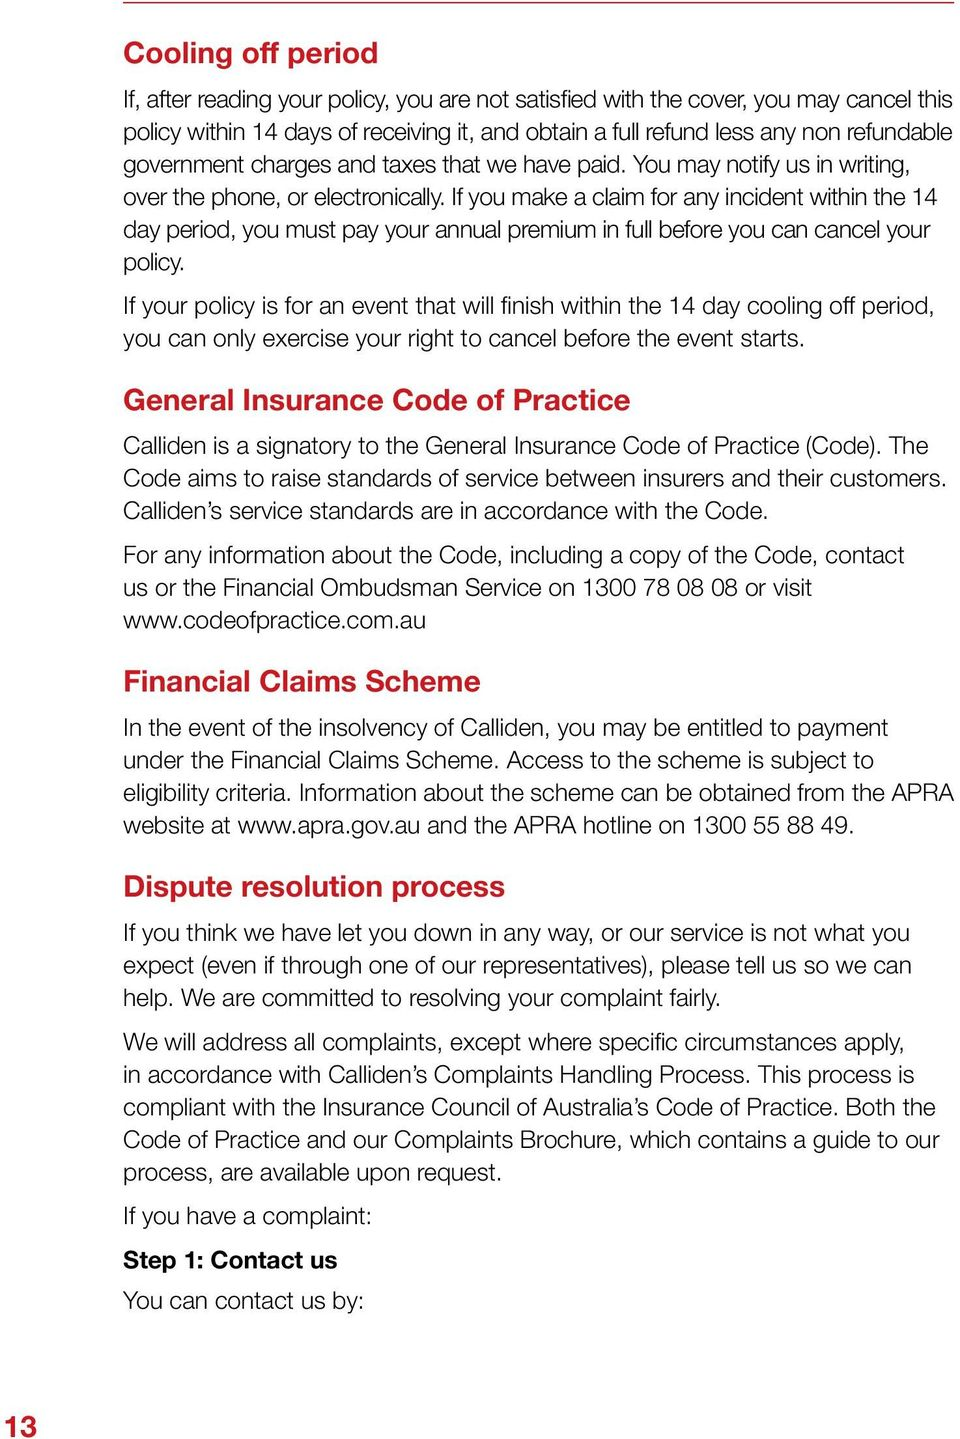 If you make a claim for any incident within the 14 day period, you must pay your annual premium in full before you can cancel your policy.